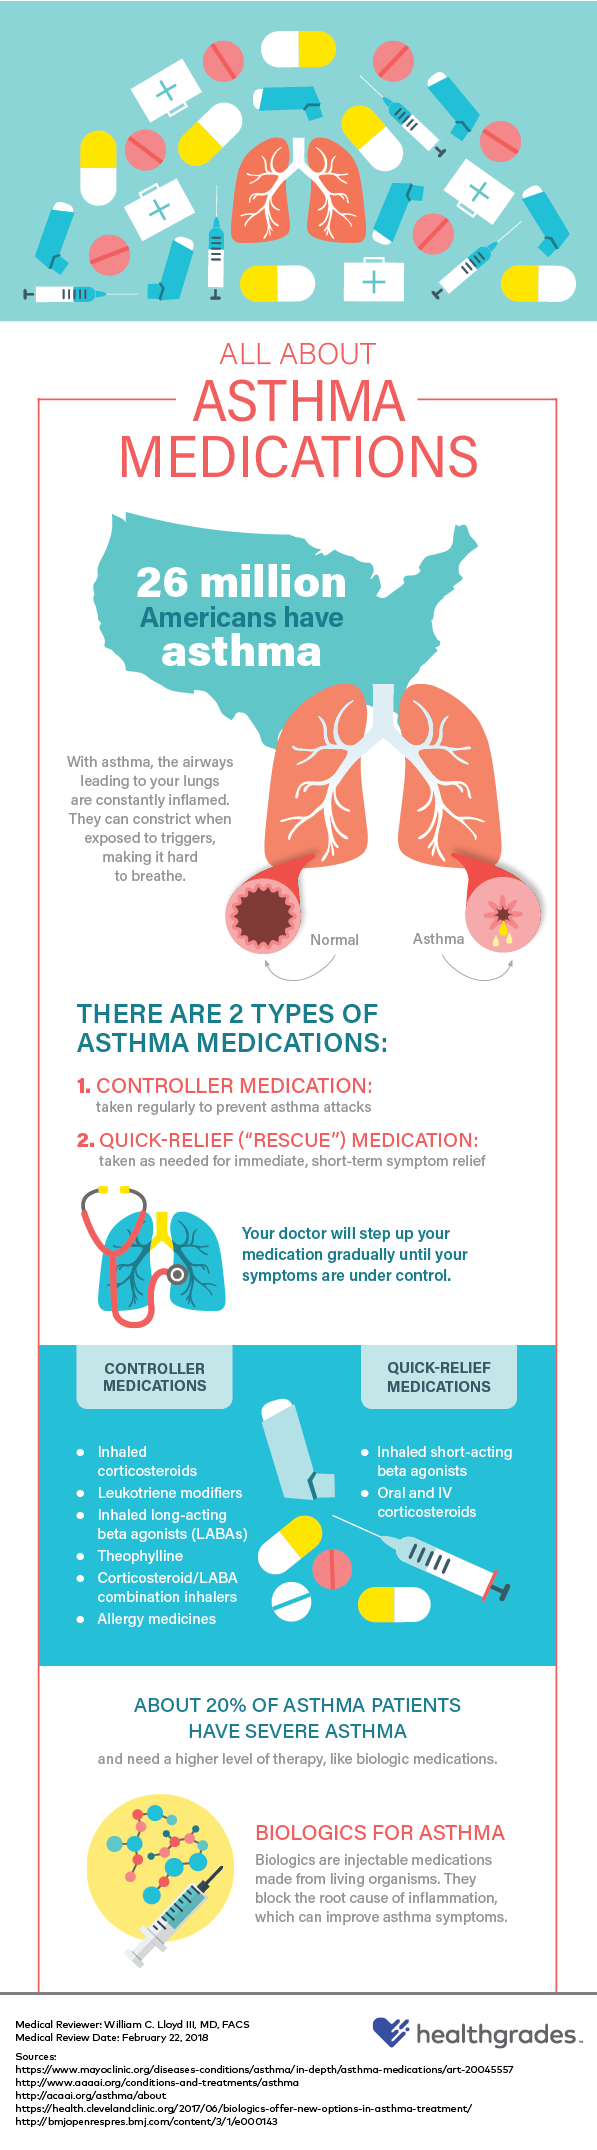 All About Asthma Medications infographic